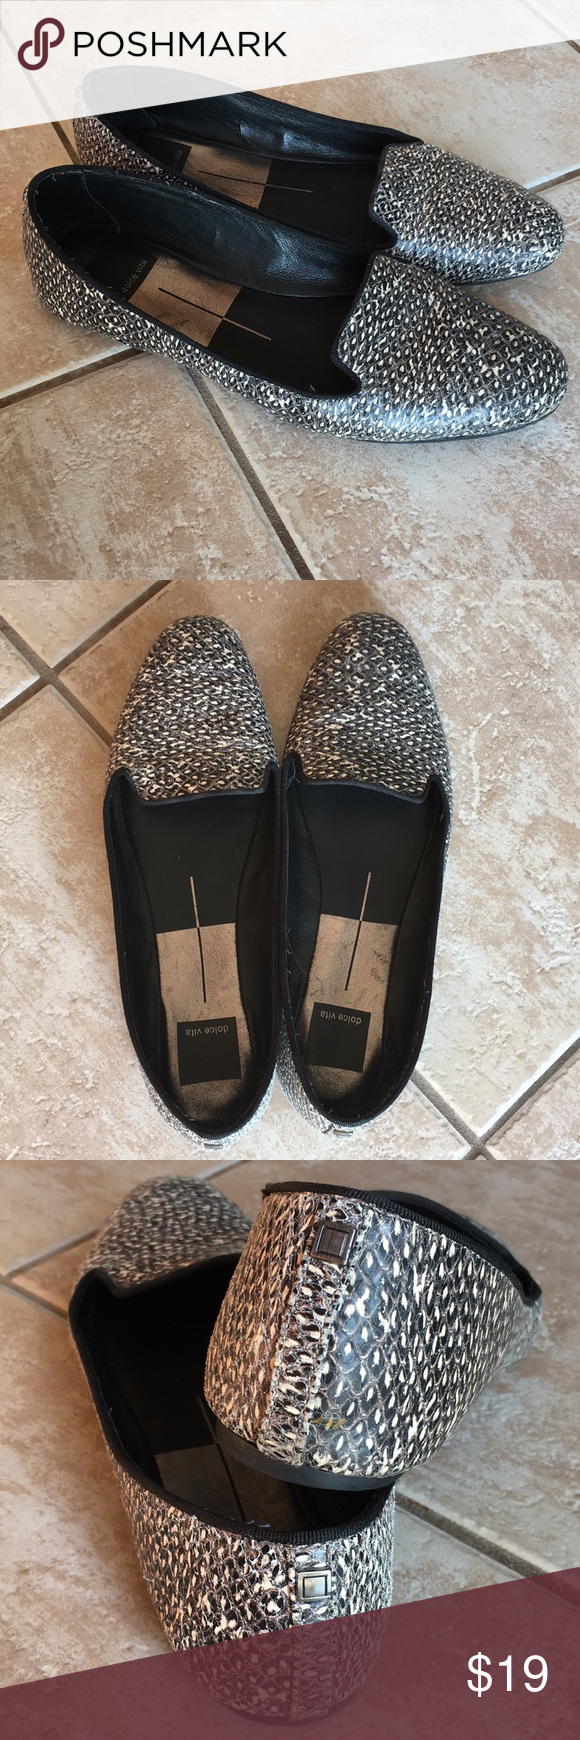 a992fb93c52 Dolce Vita Flats Size 8 Snakeskin Black White 🖤💟 Dolce Vita Ladies Flats  - imitation snakeskin in Black 🖤   White 💟. Good condition   very  comfortable.